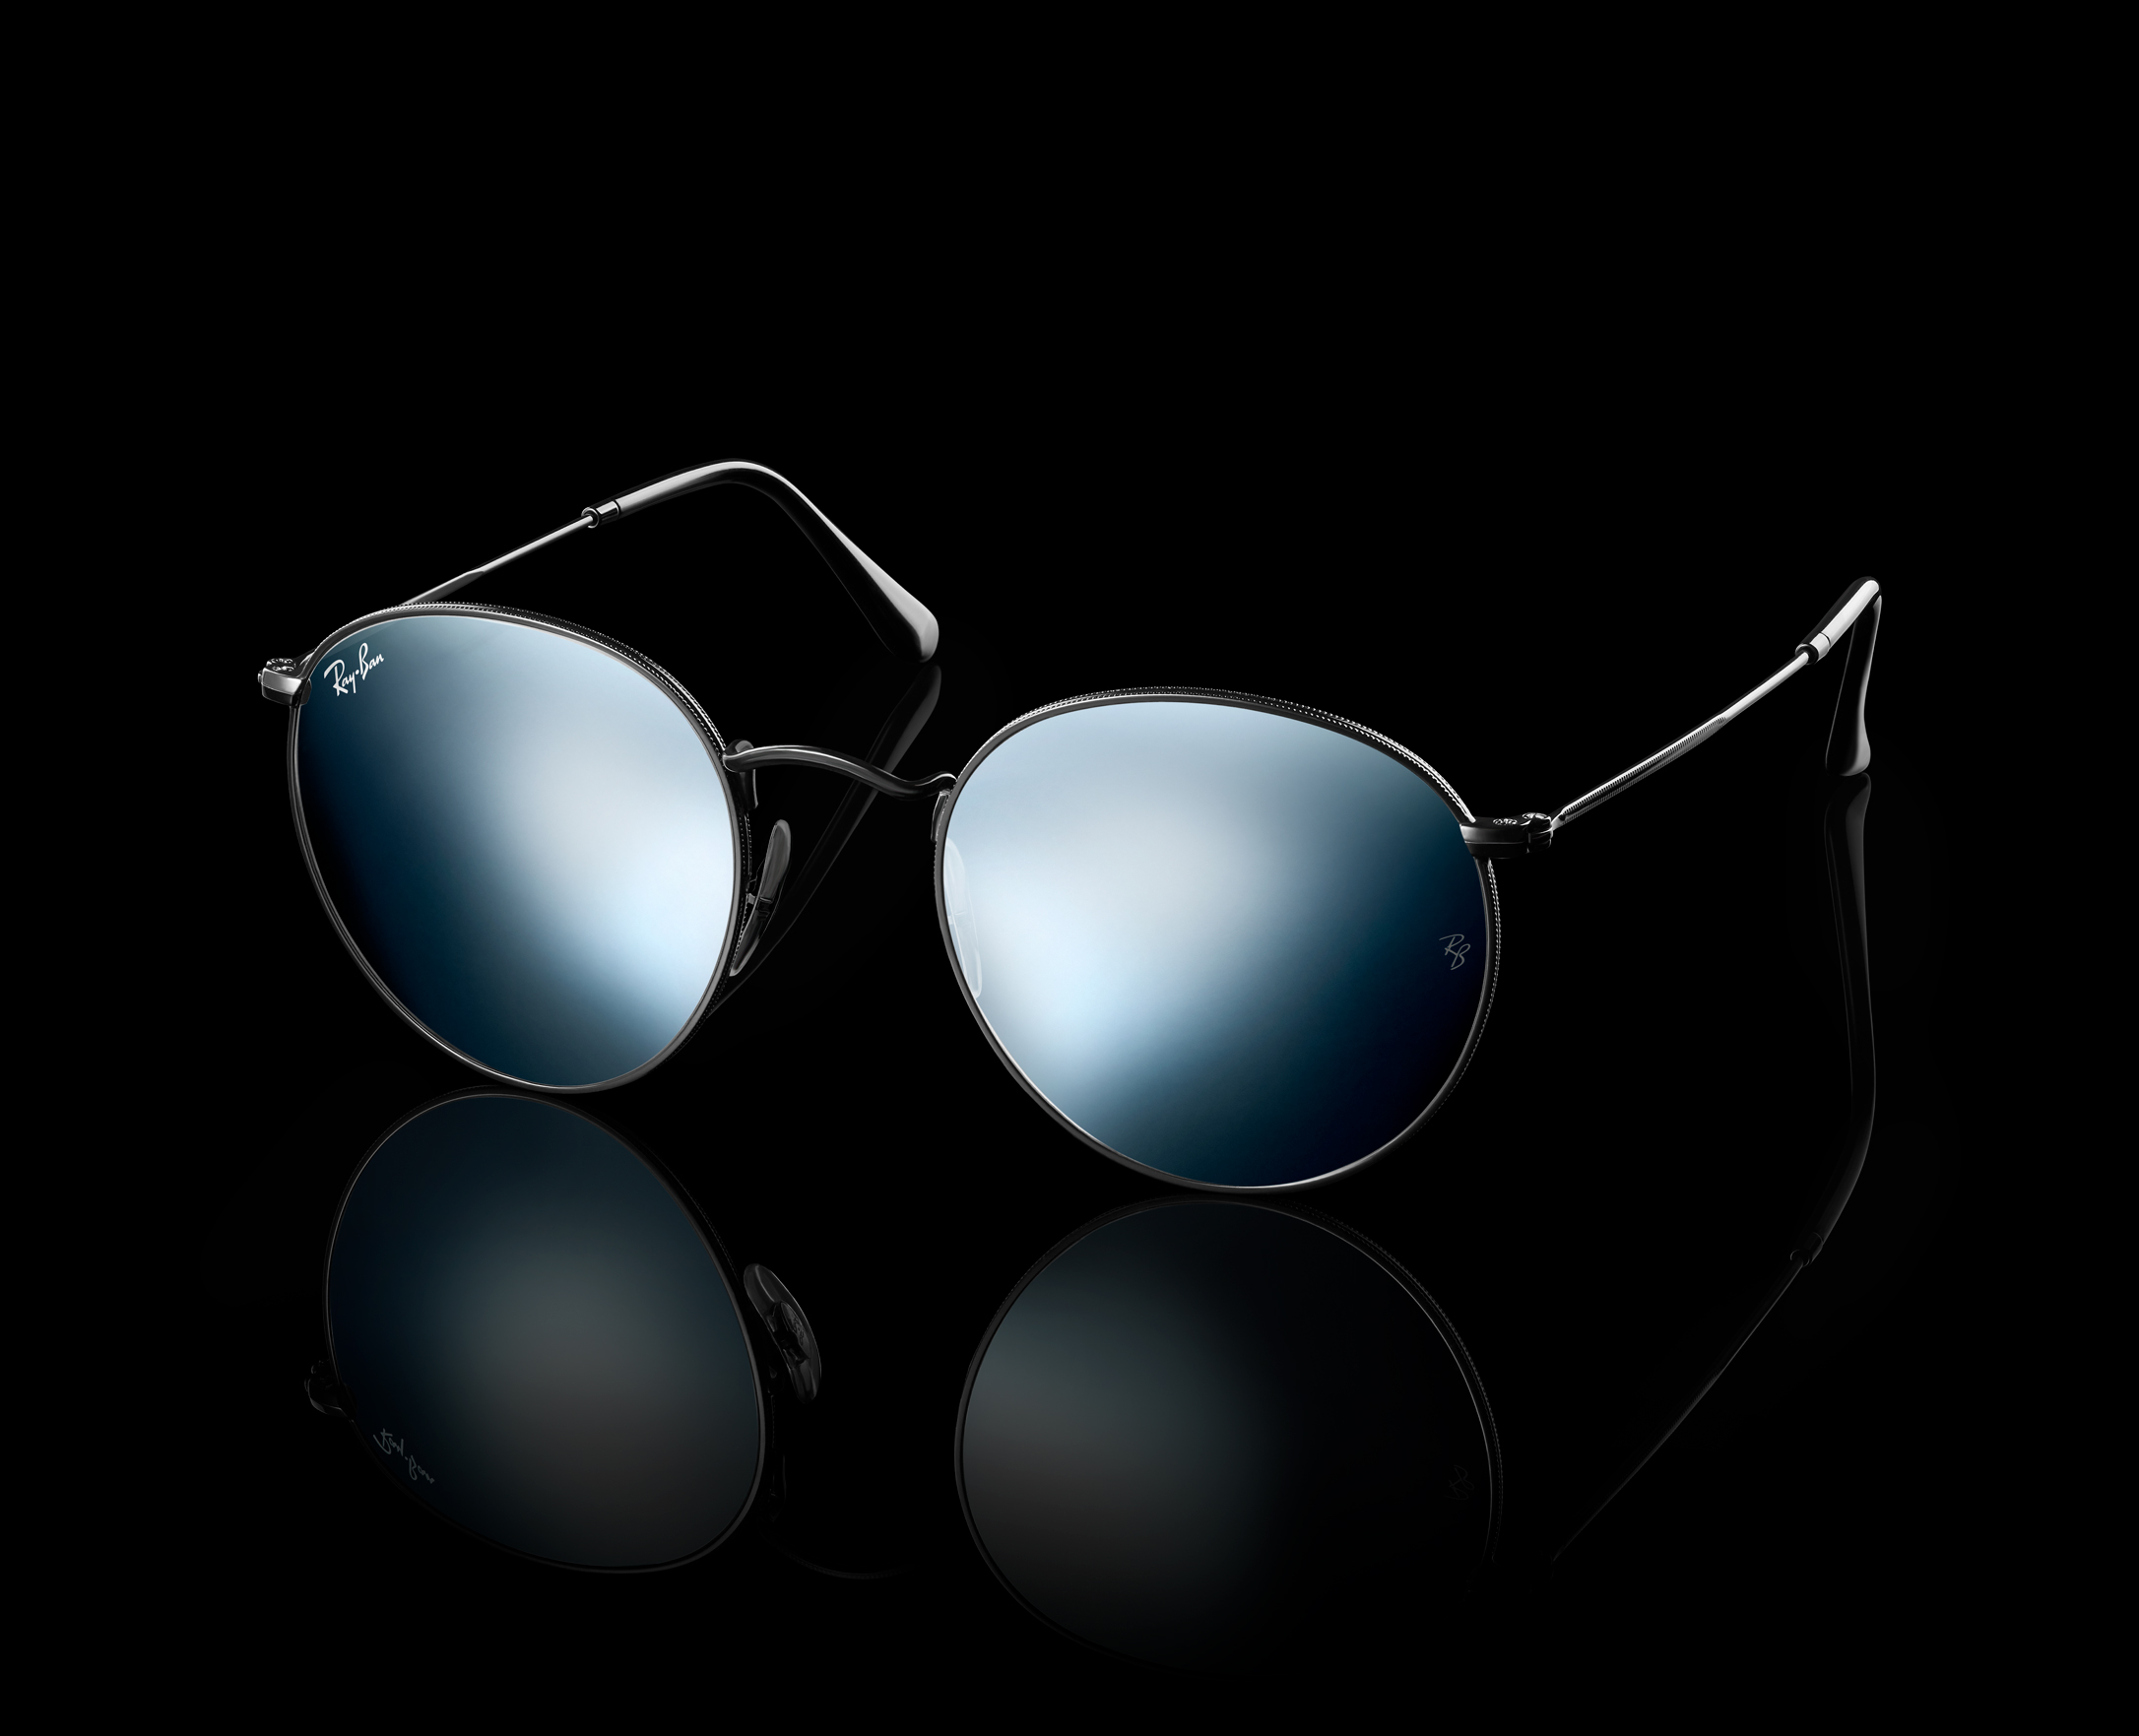 Ray-Ban-Exclusives-Flash-Black-Beauty-Shot-Round.jpg